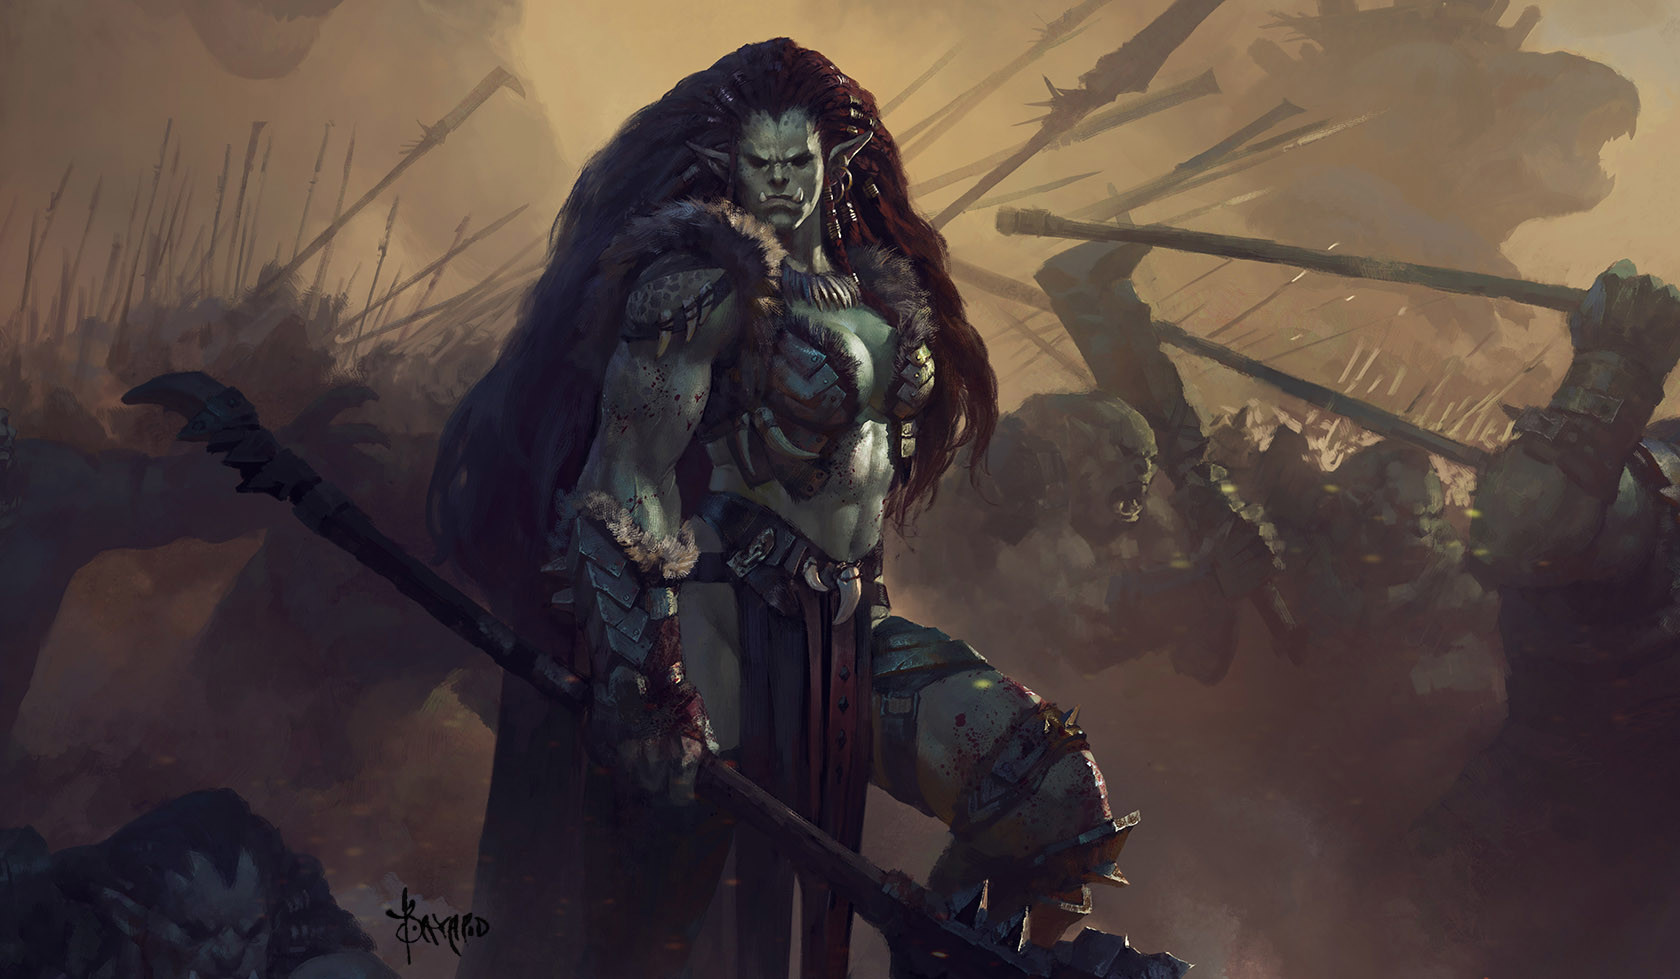 bayard_wu_digital_painting_illustration_fantasy_orc